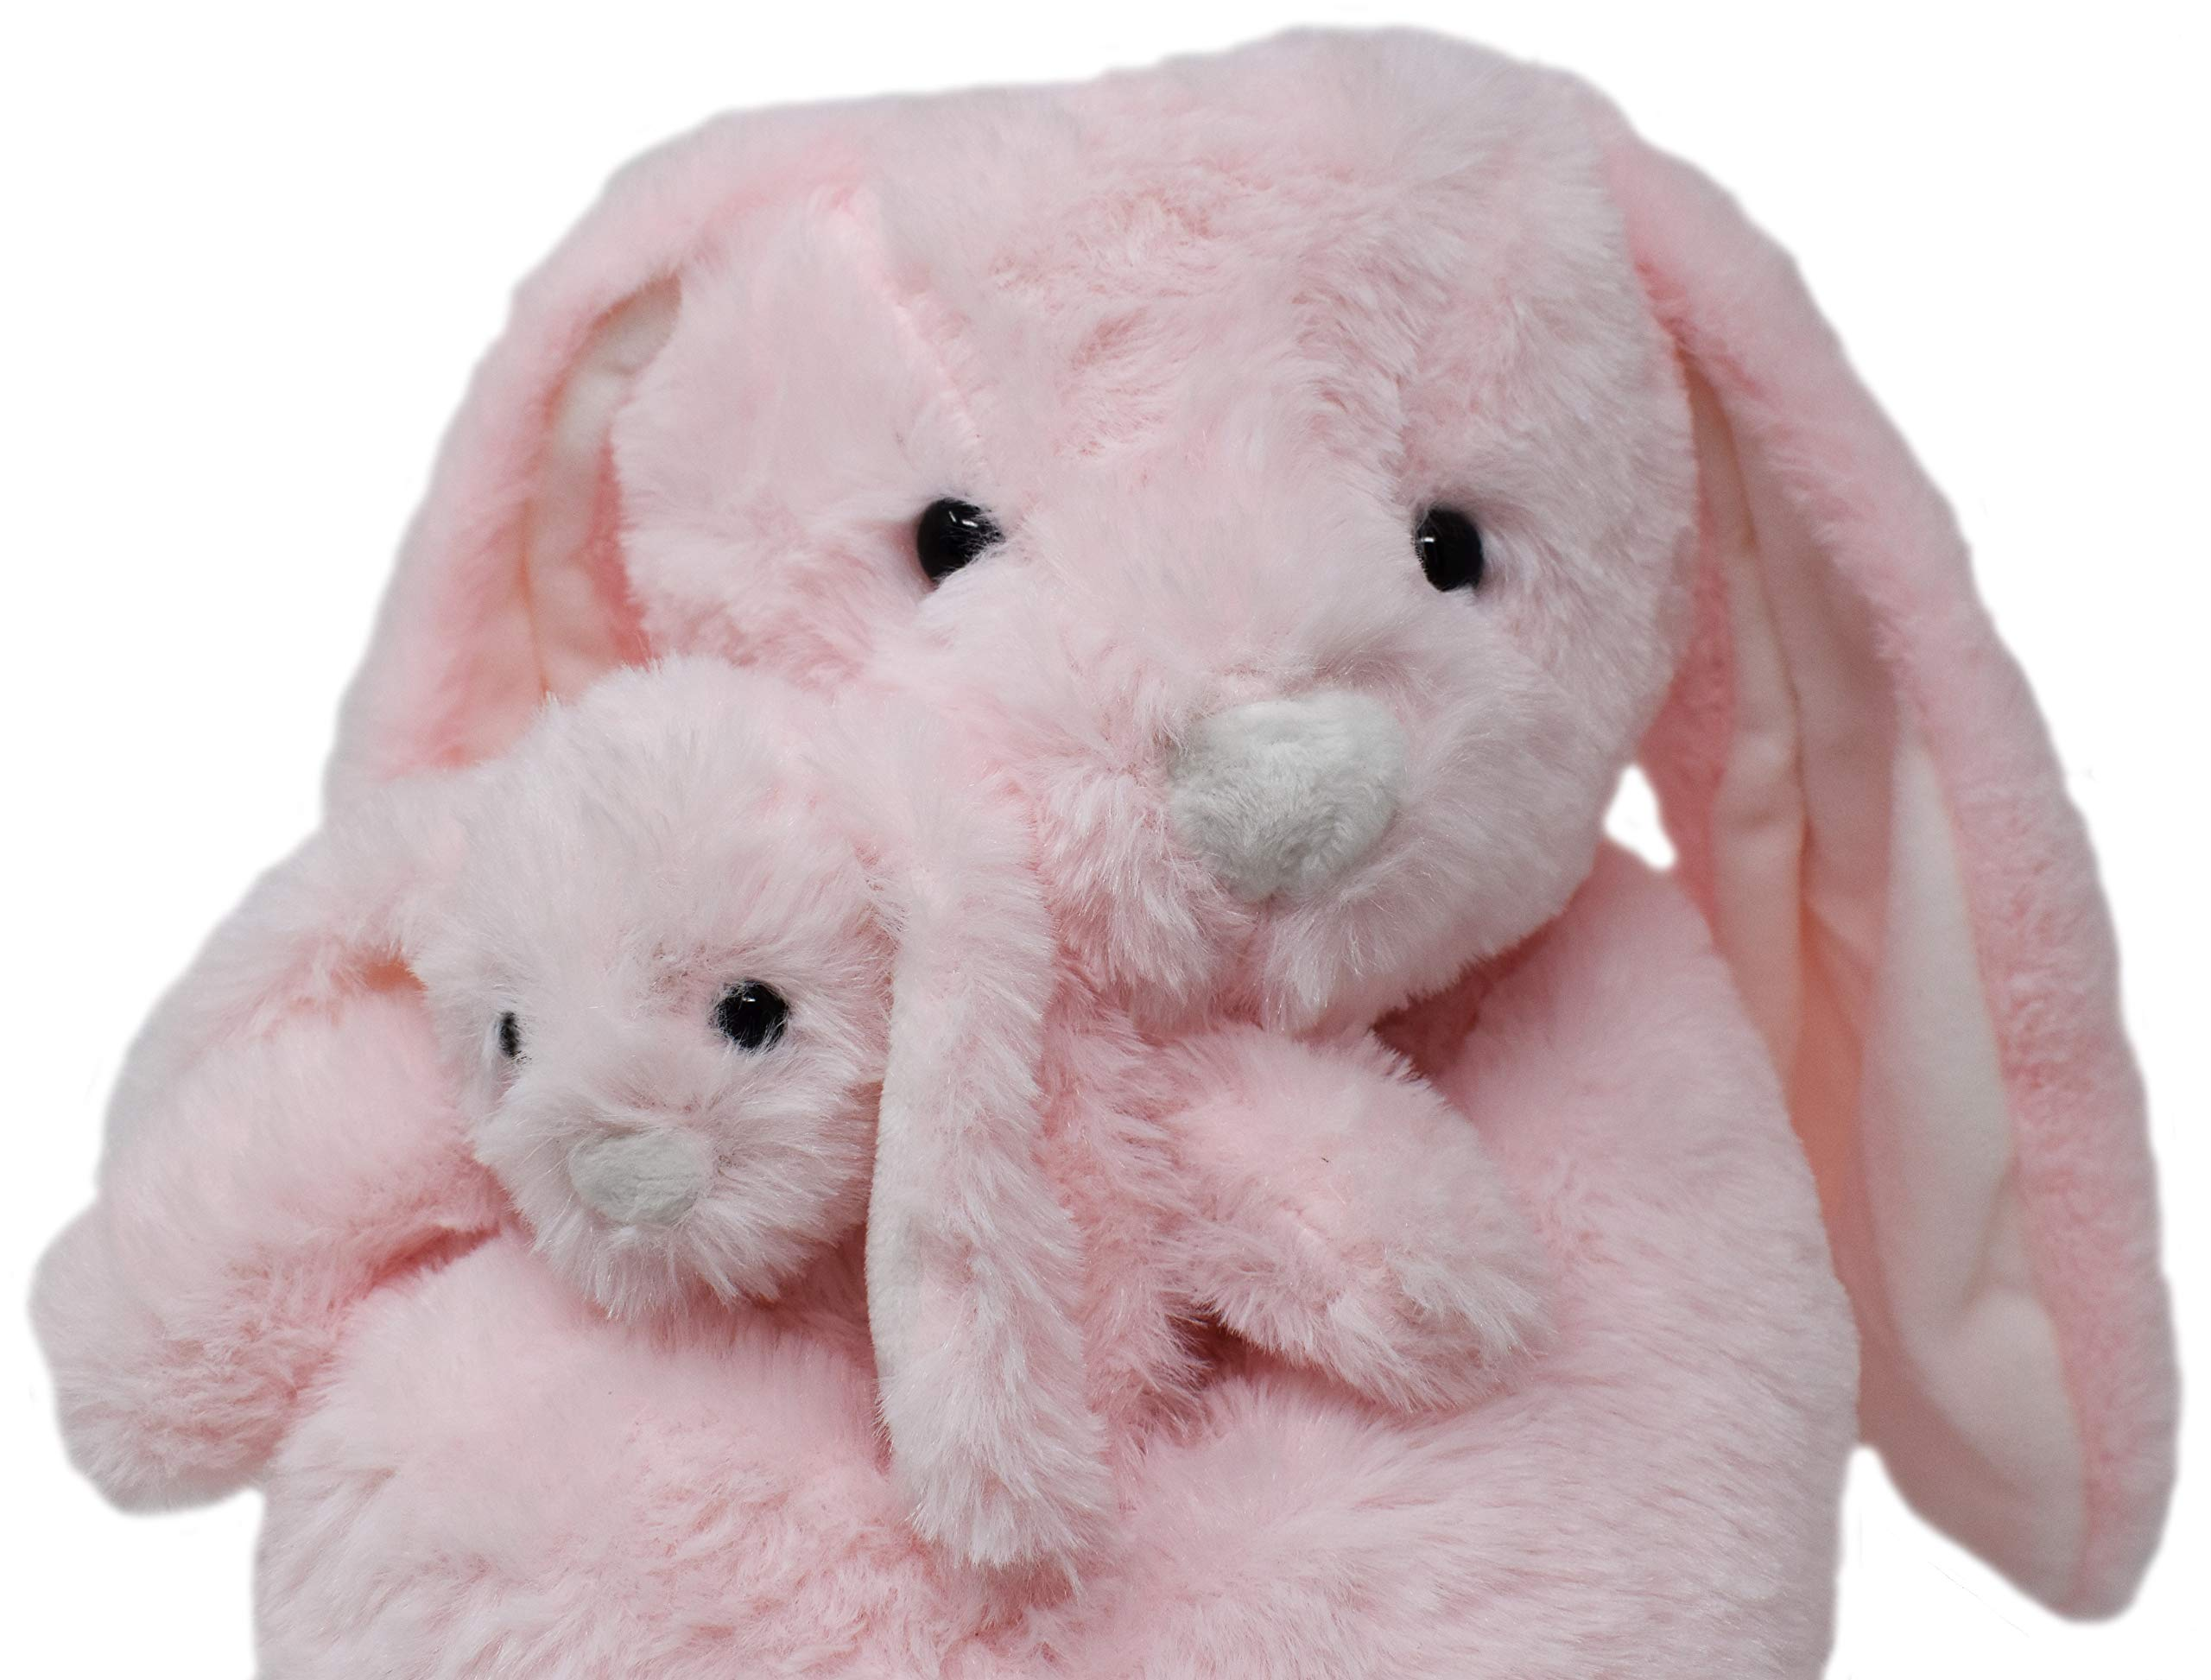 Exceptional Home Bunny Rabbits Pink Lop Eared Plush Stuffed Animals Set. 18 inch Bunnies with Baby Rabbit. Kids Toys Gift by Exceptional Home